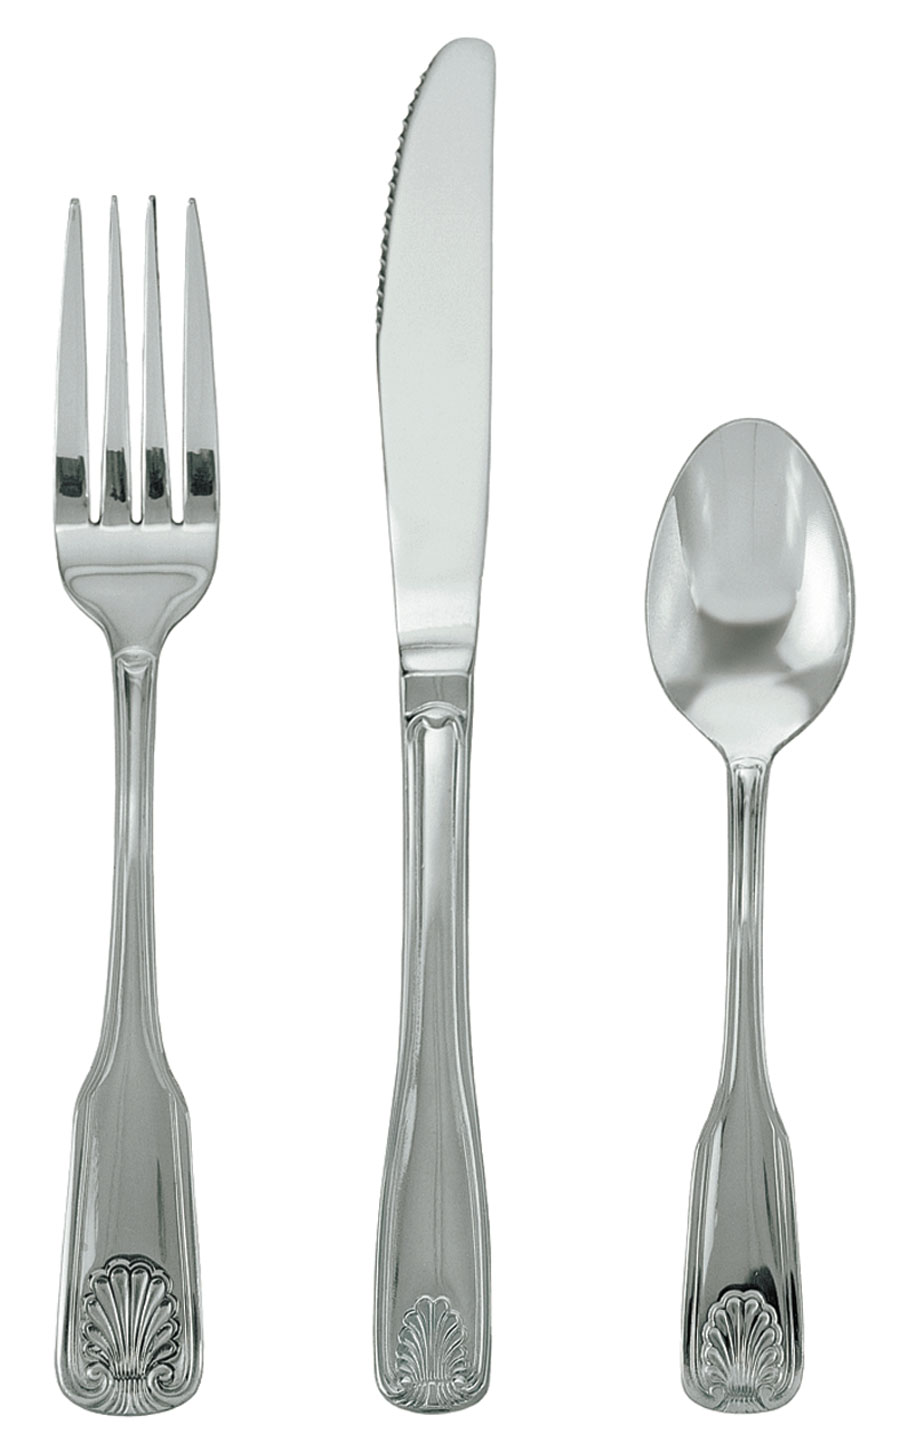 Update International SH/CP-501 Clear Pack Shelley Teaspoons 18/0 Stainless Steel - 1 doz